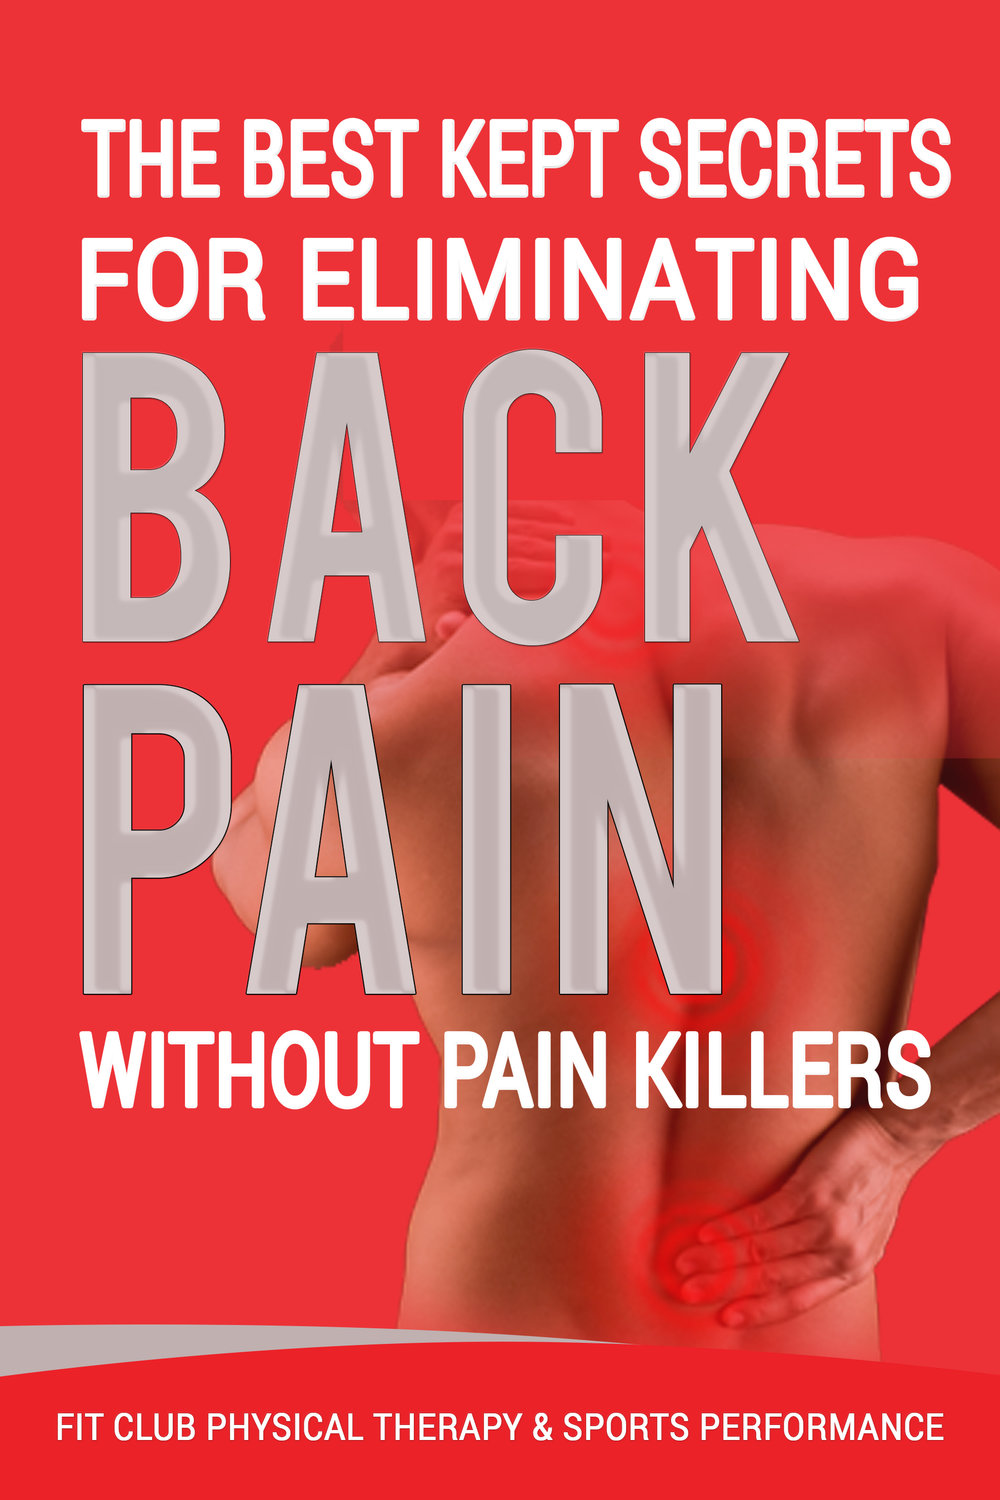 Free Back Pain Report  - Click the image to receive your free report now!